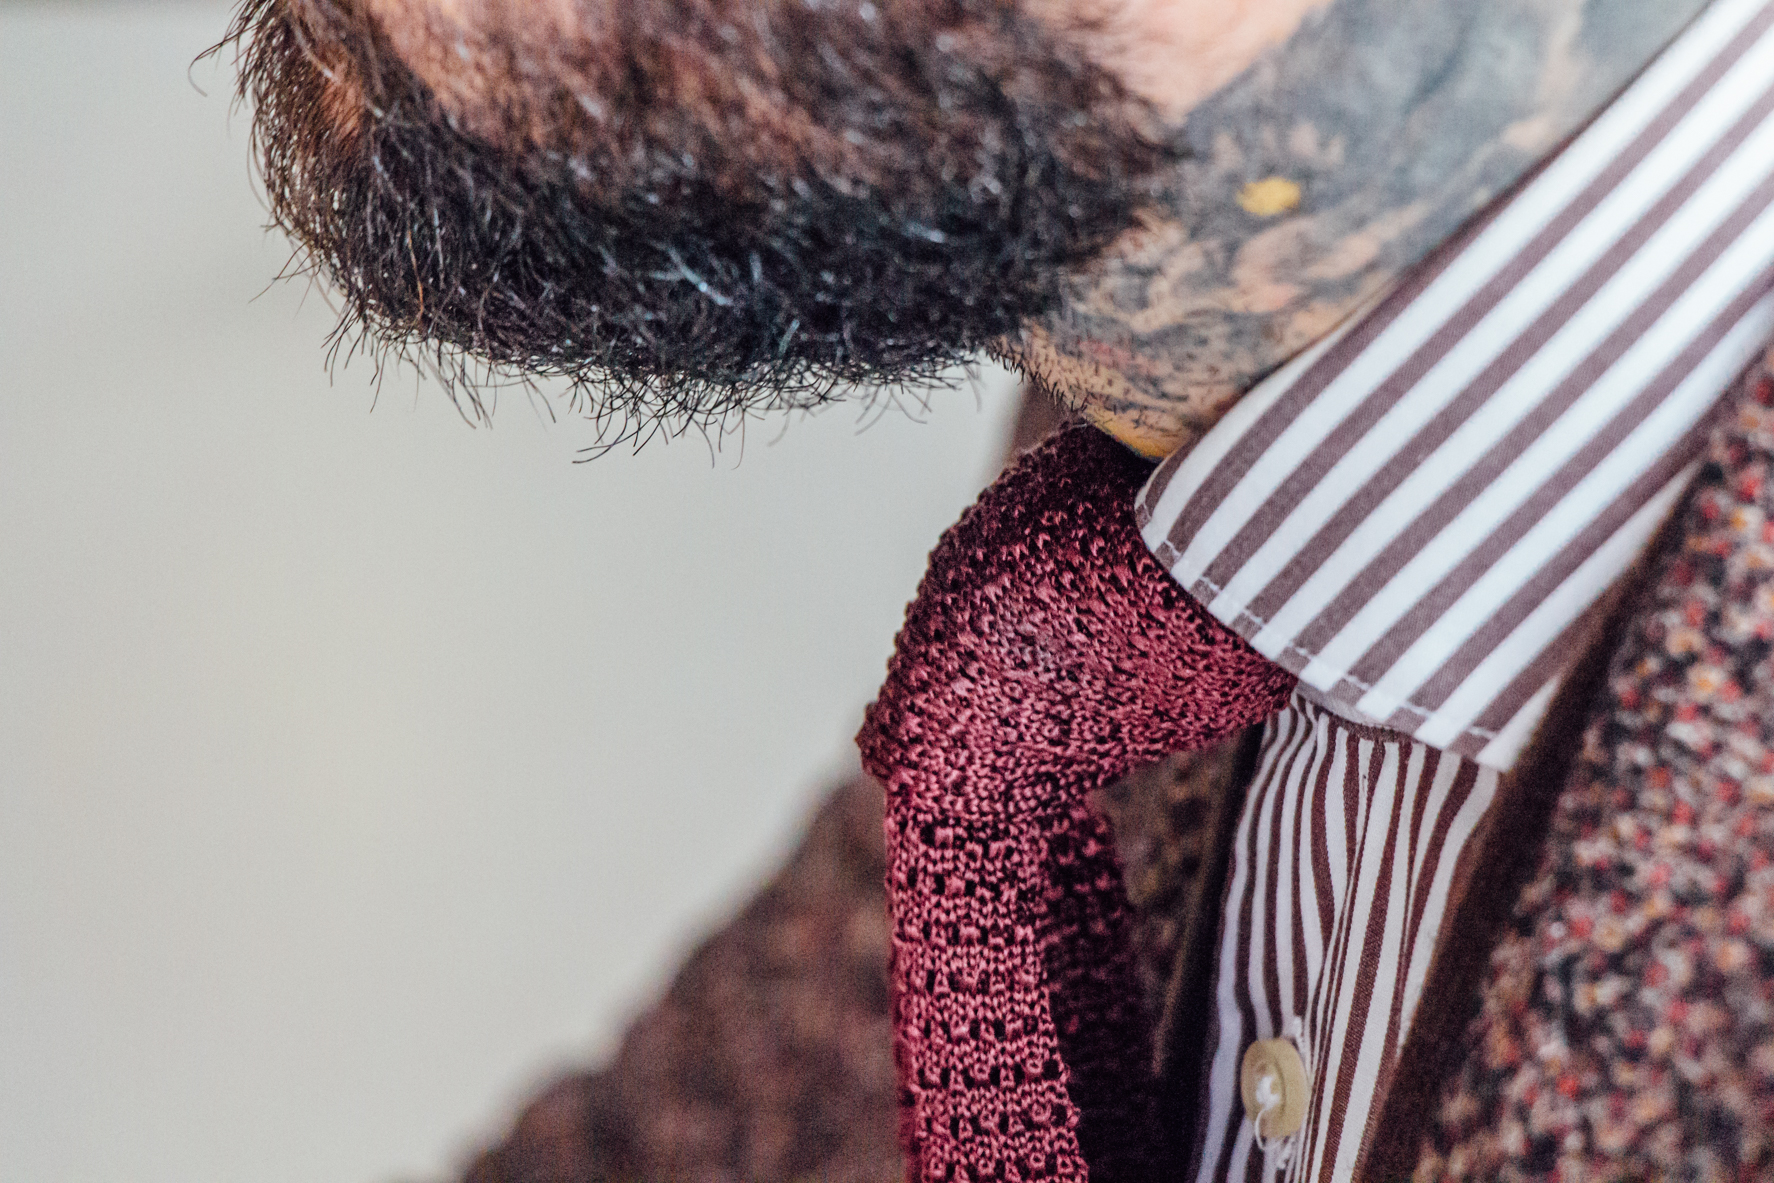 Knit tie with a beard to match.